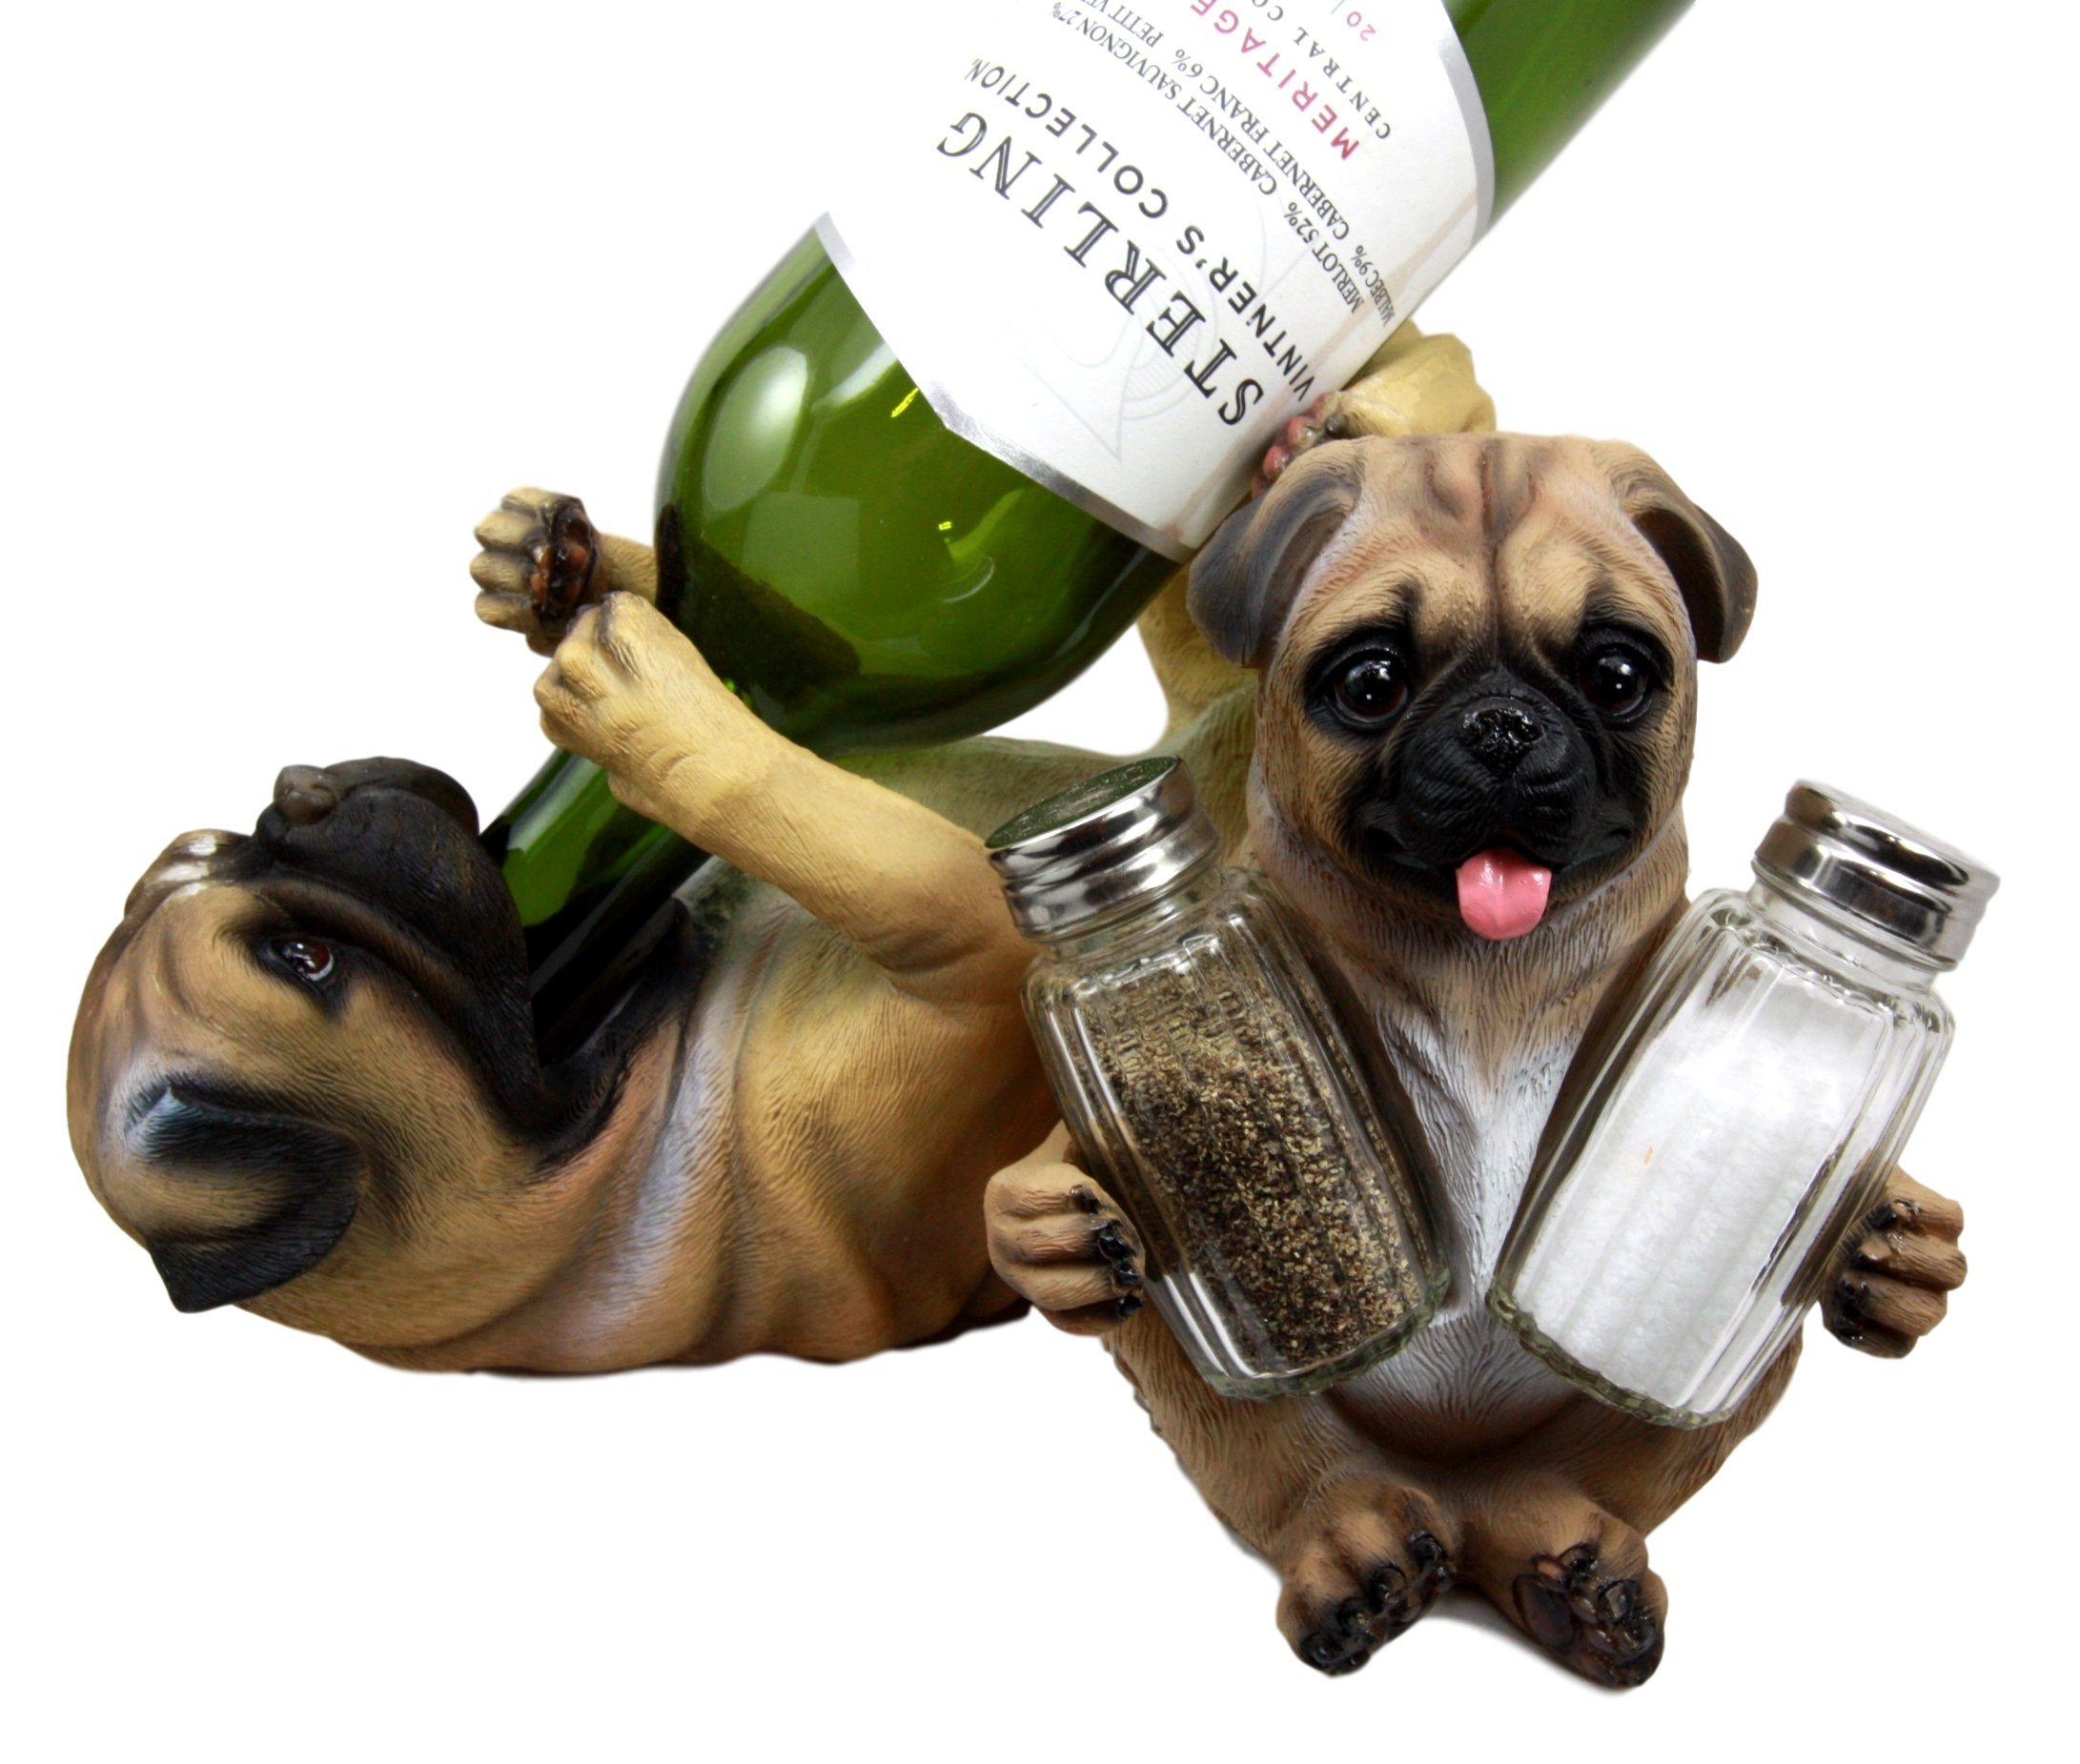 Atlantic Collectibles Adorable Canine Pug Dog 10.75'' Tall Wine Bottle And Salt Pepper Shakers Holder Figurine Set by Atlantic